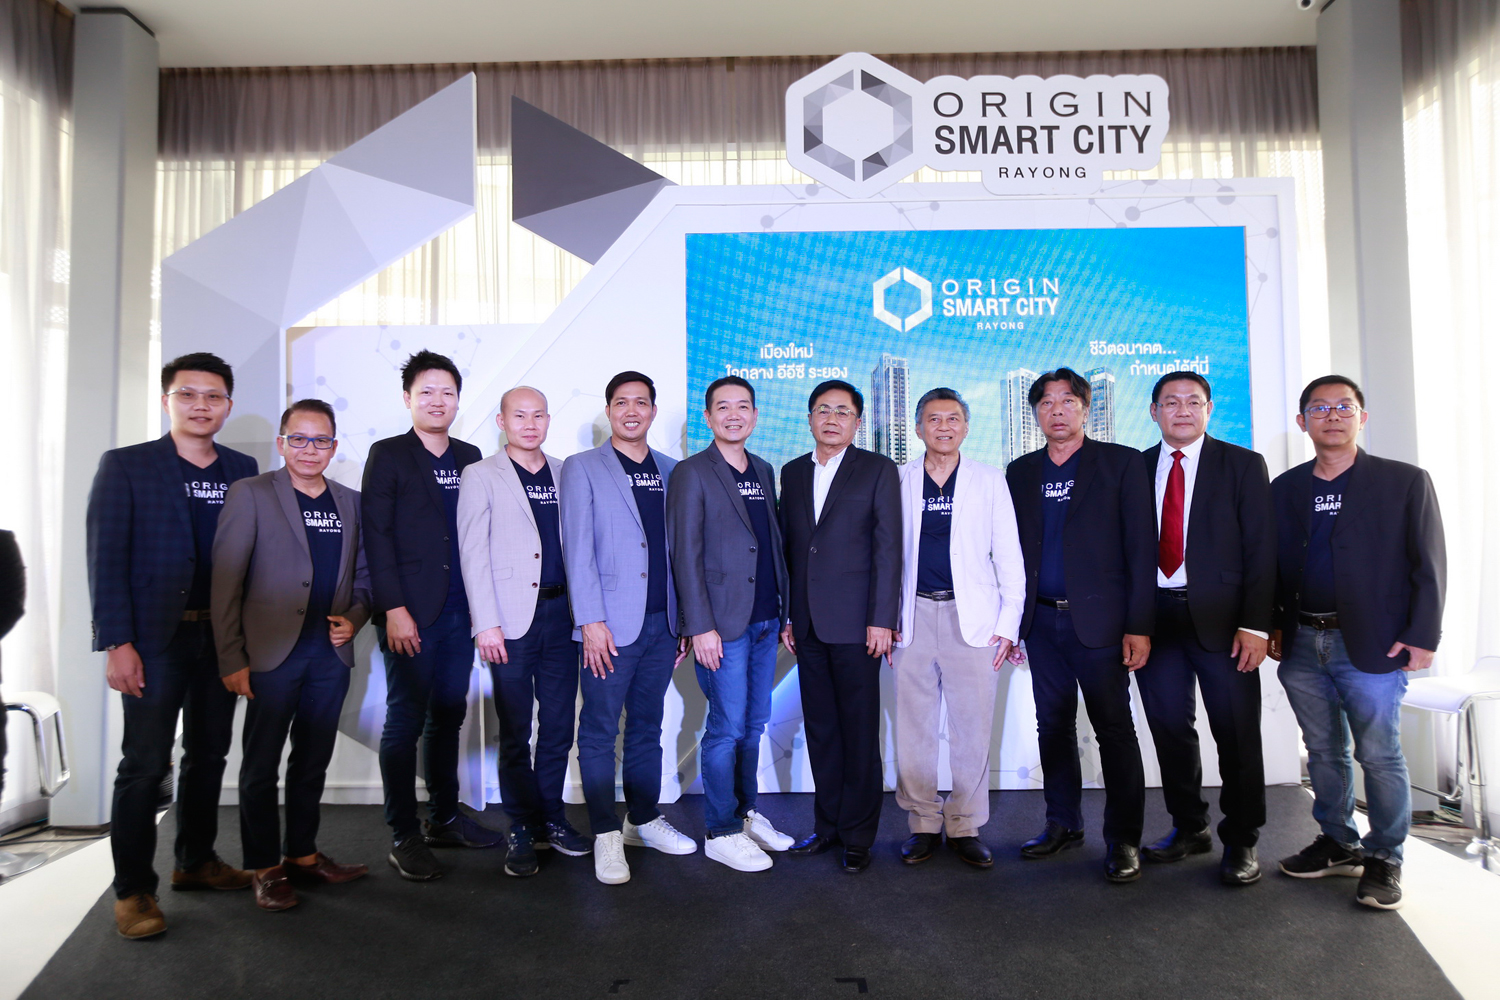 """Origin Property"" joins forces with public-private sectors to launch ""Origin Smart City Rayong"""